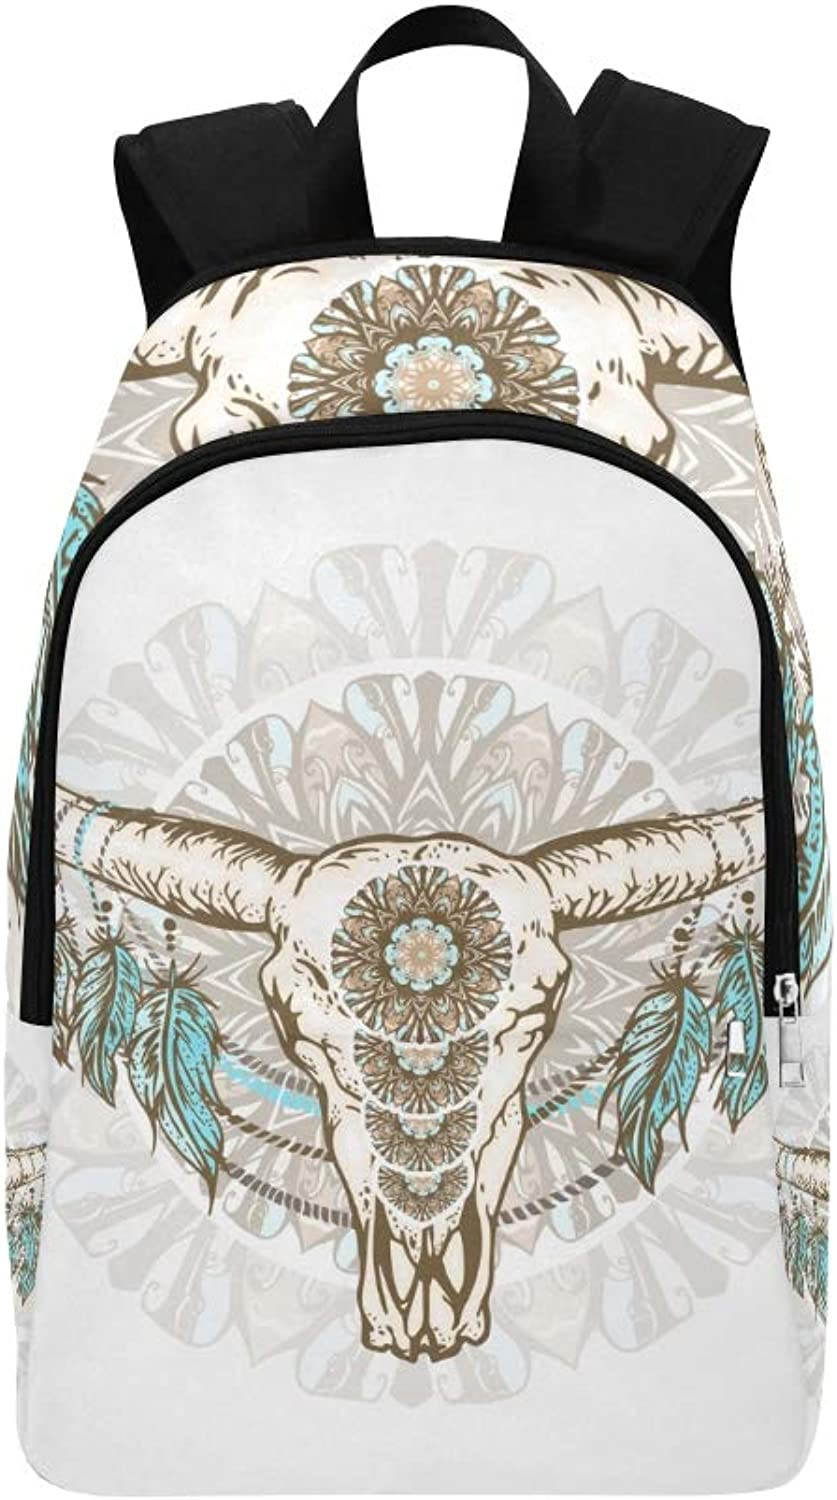 Bull Head with Flowers and Feathers Casual Daypack Travel Bag College School Backpack for Mens and Women